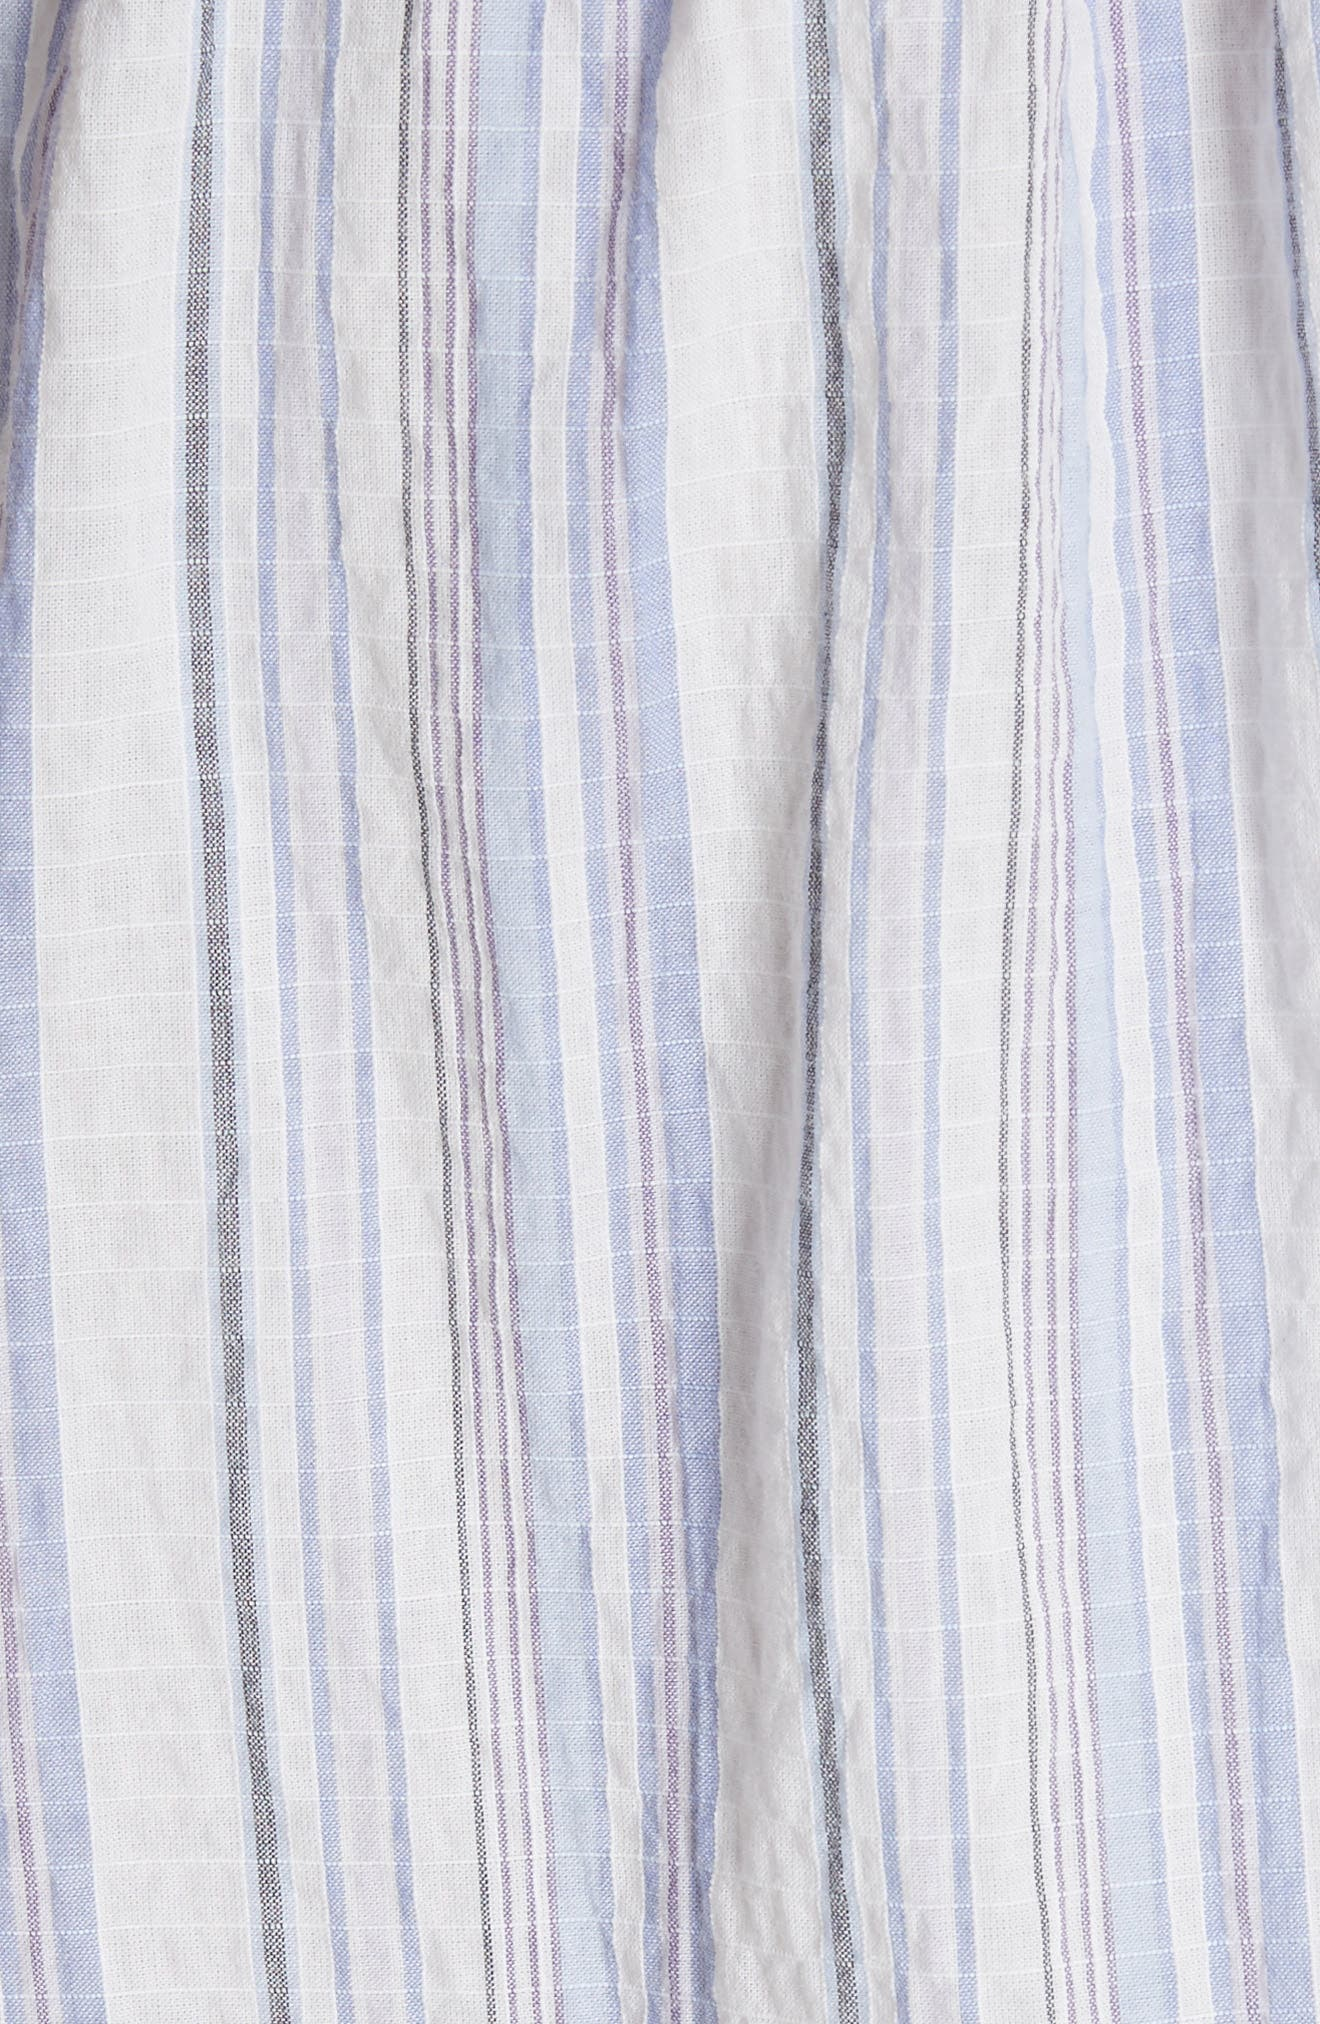 Leila Stripe Midi Dress,                             Alternate thumbnail 5, color,                             151